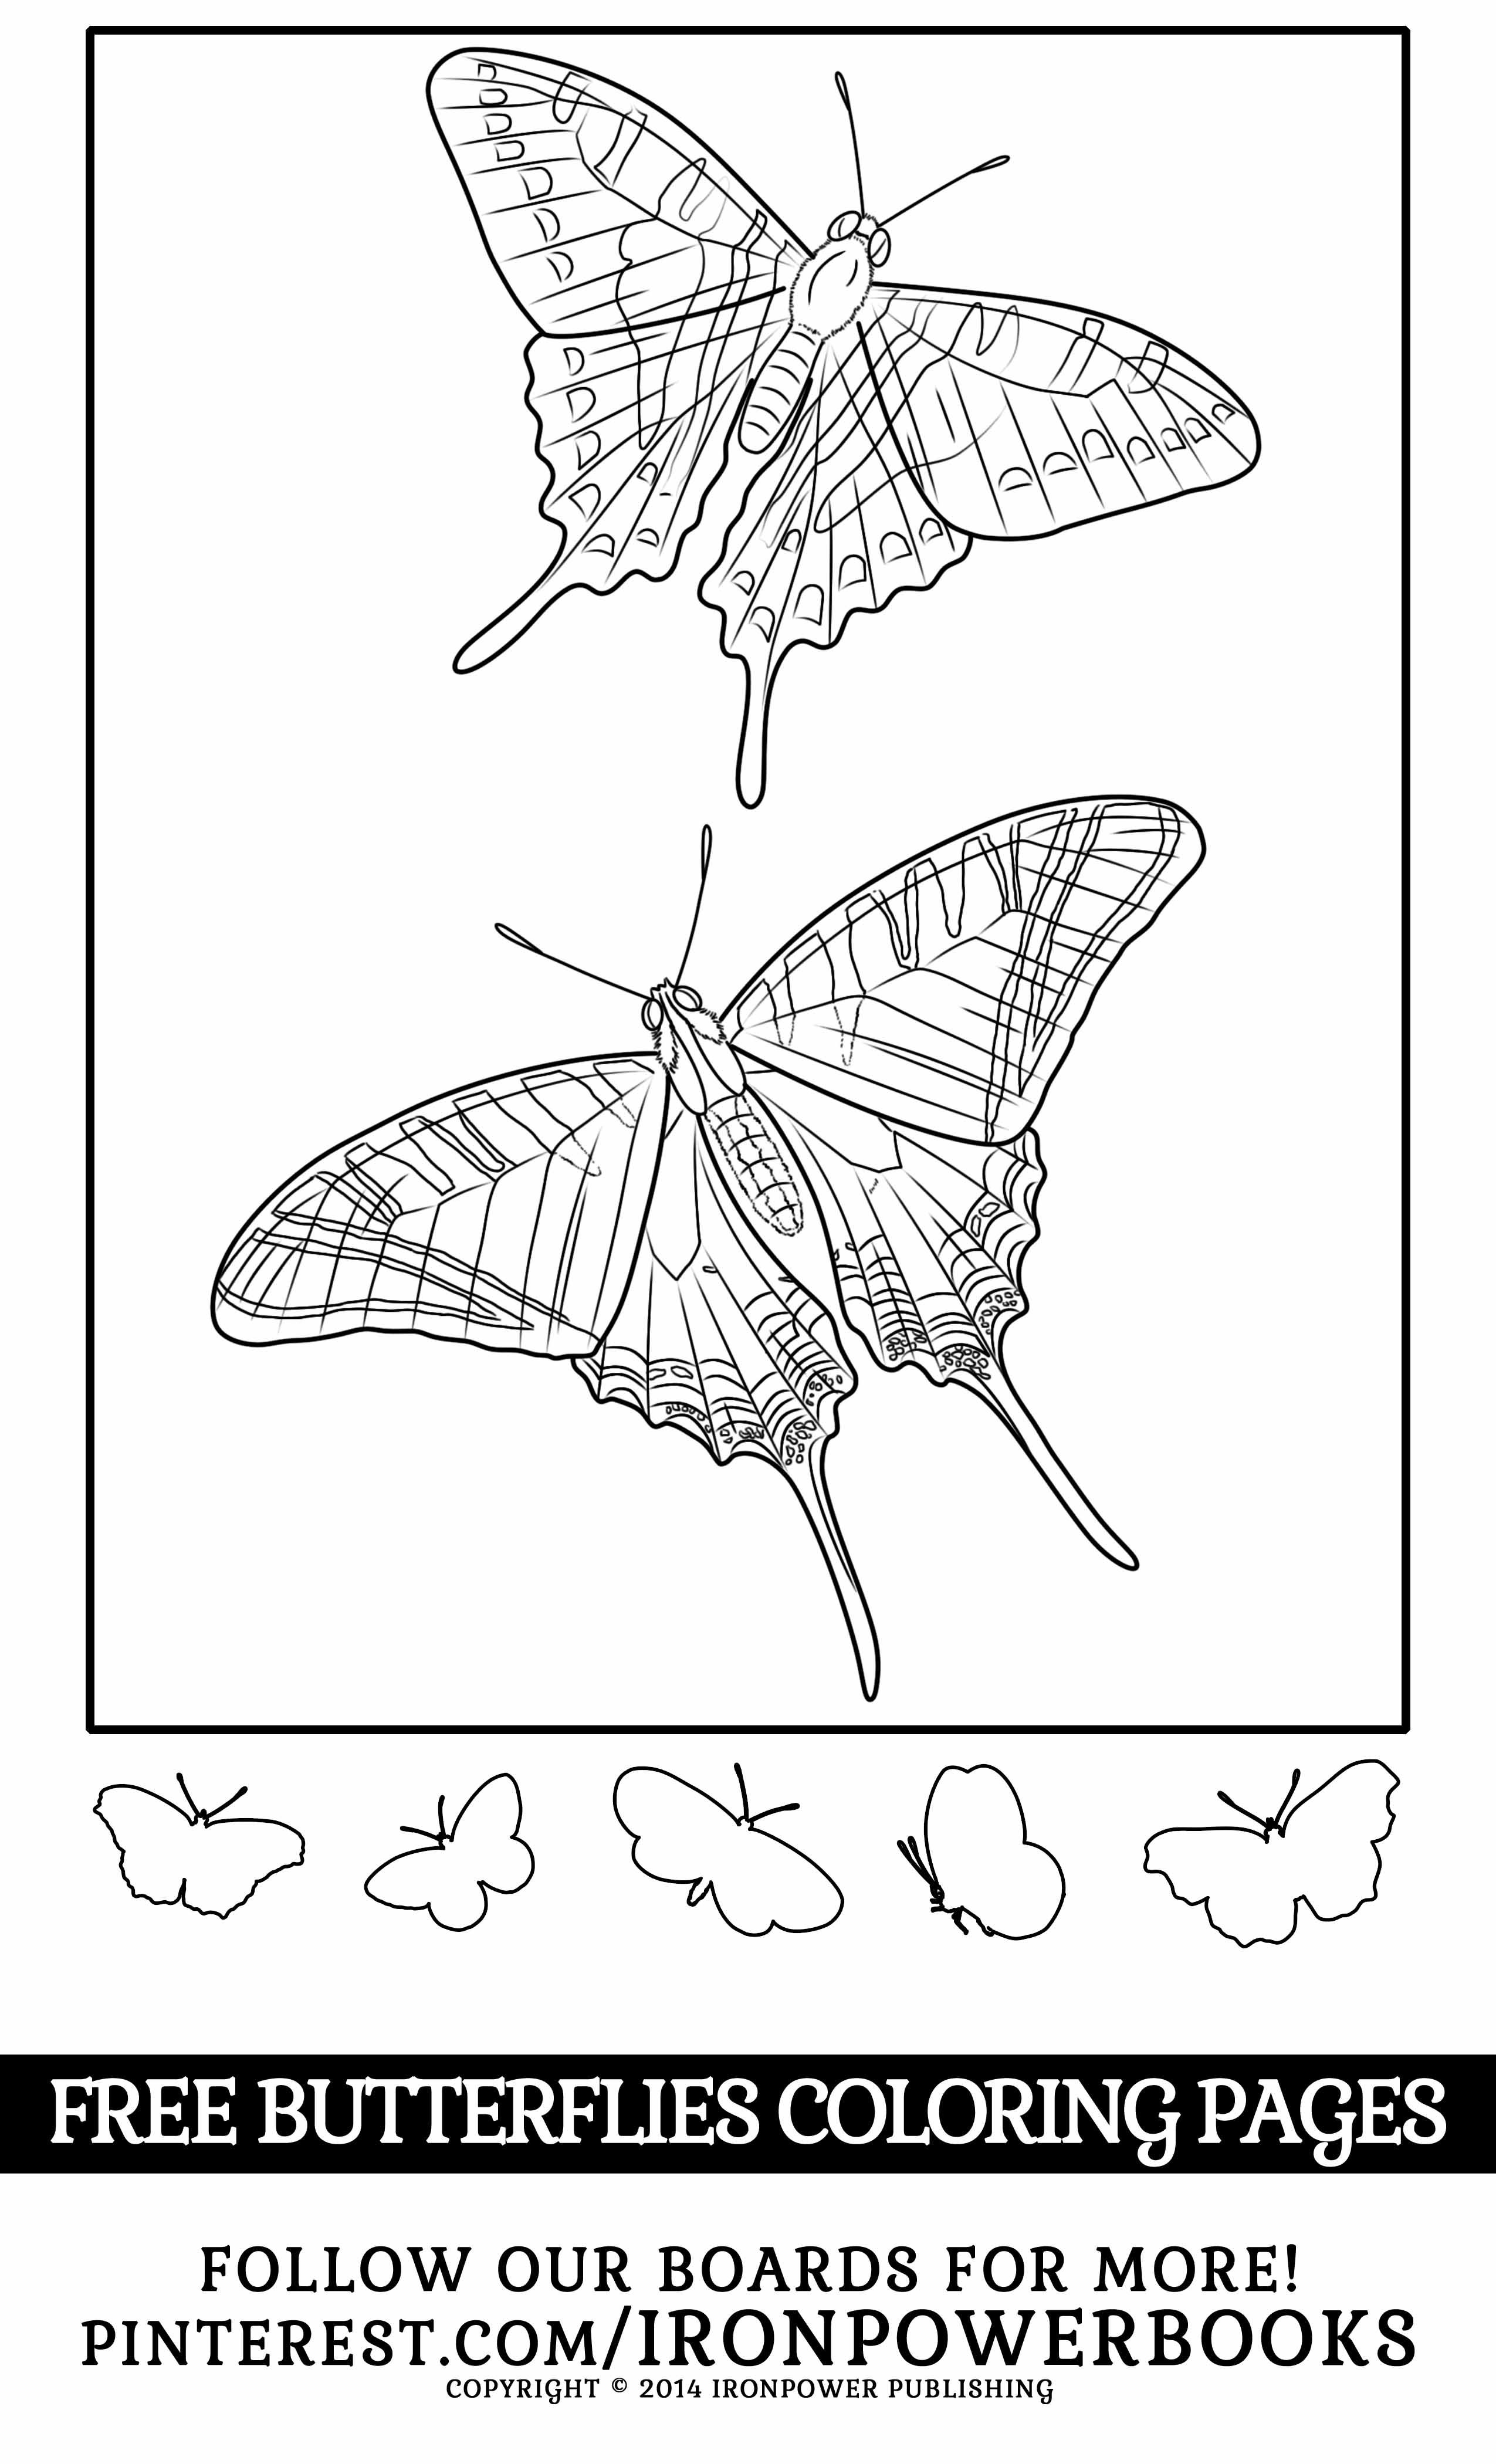 Free Butterflies Coloring Pages From The Paperback Copy At Http Www Amazon Com Butterfly Color Butterfly Coloring Page Detailed Coloring Pages Coloring Pages [ 4200 x 2550 Pixel ]